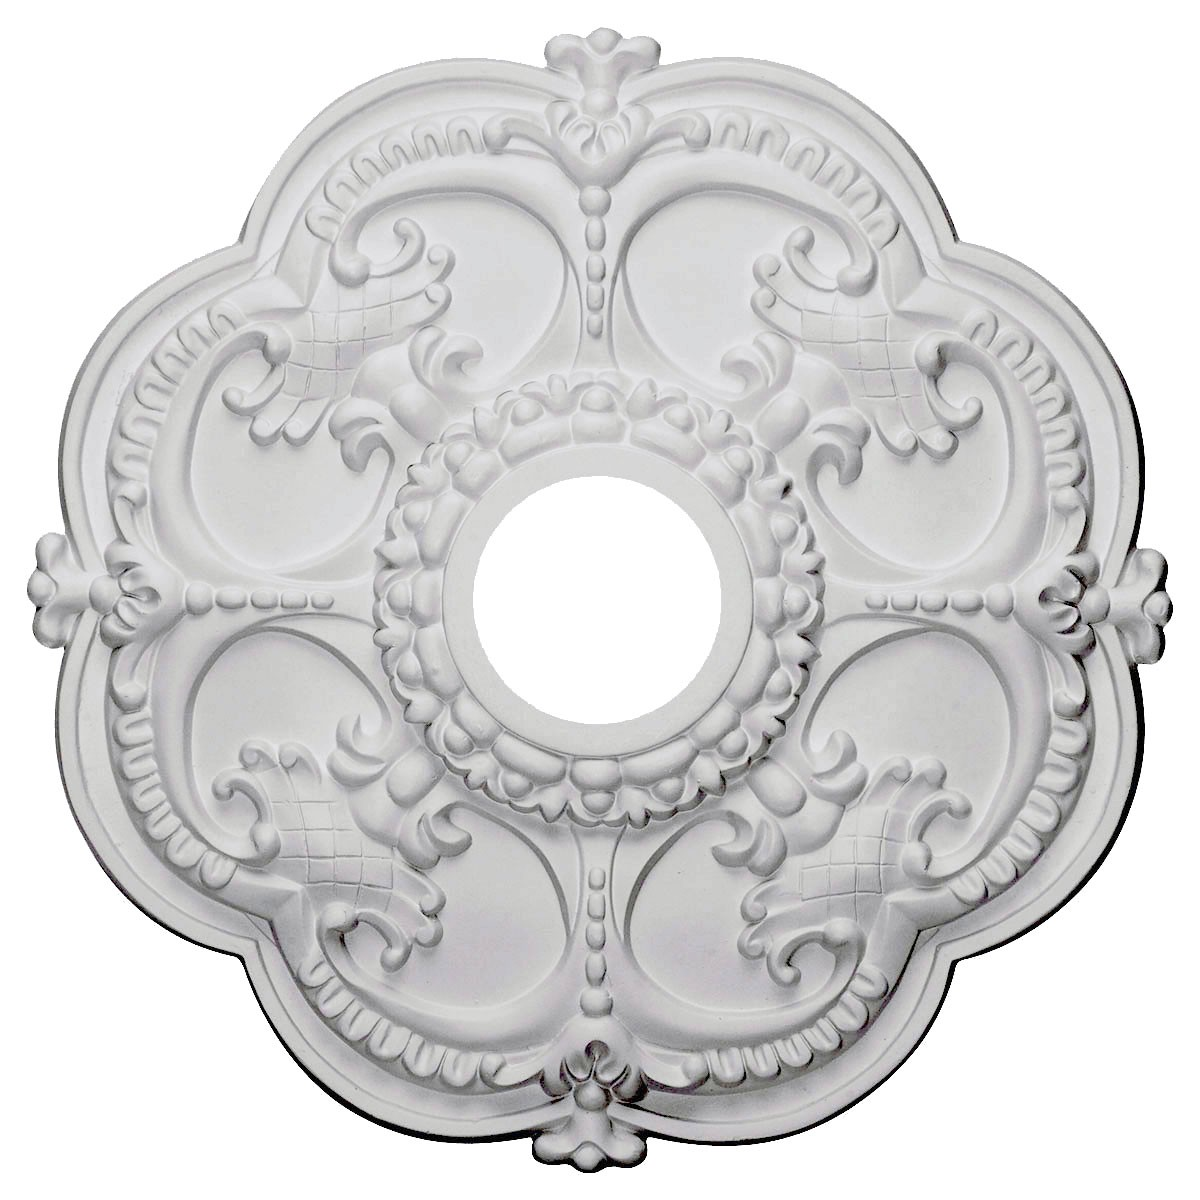 "EM-CM17RO - 18""OD x 3 1/2""ID x 1 1/2""P Rotherham Ceiling Medallion (Fits Canopies up to 3 1/2"")"